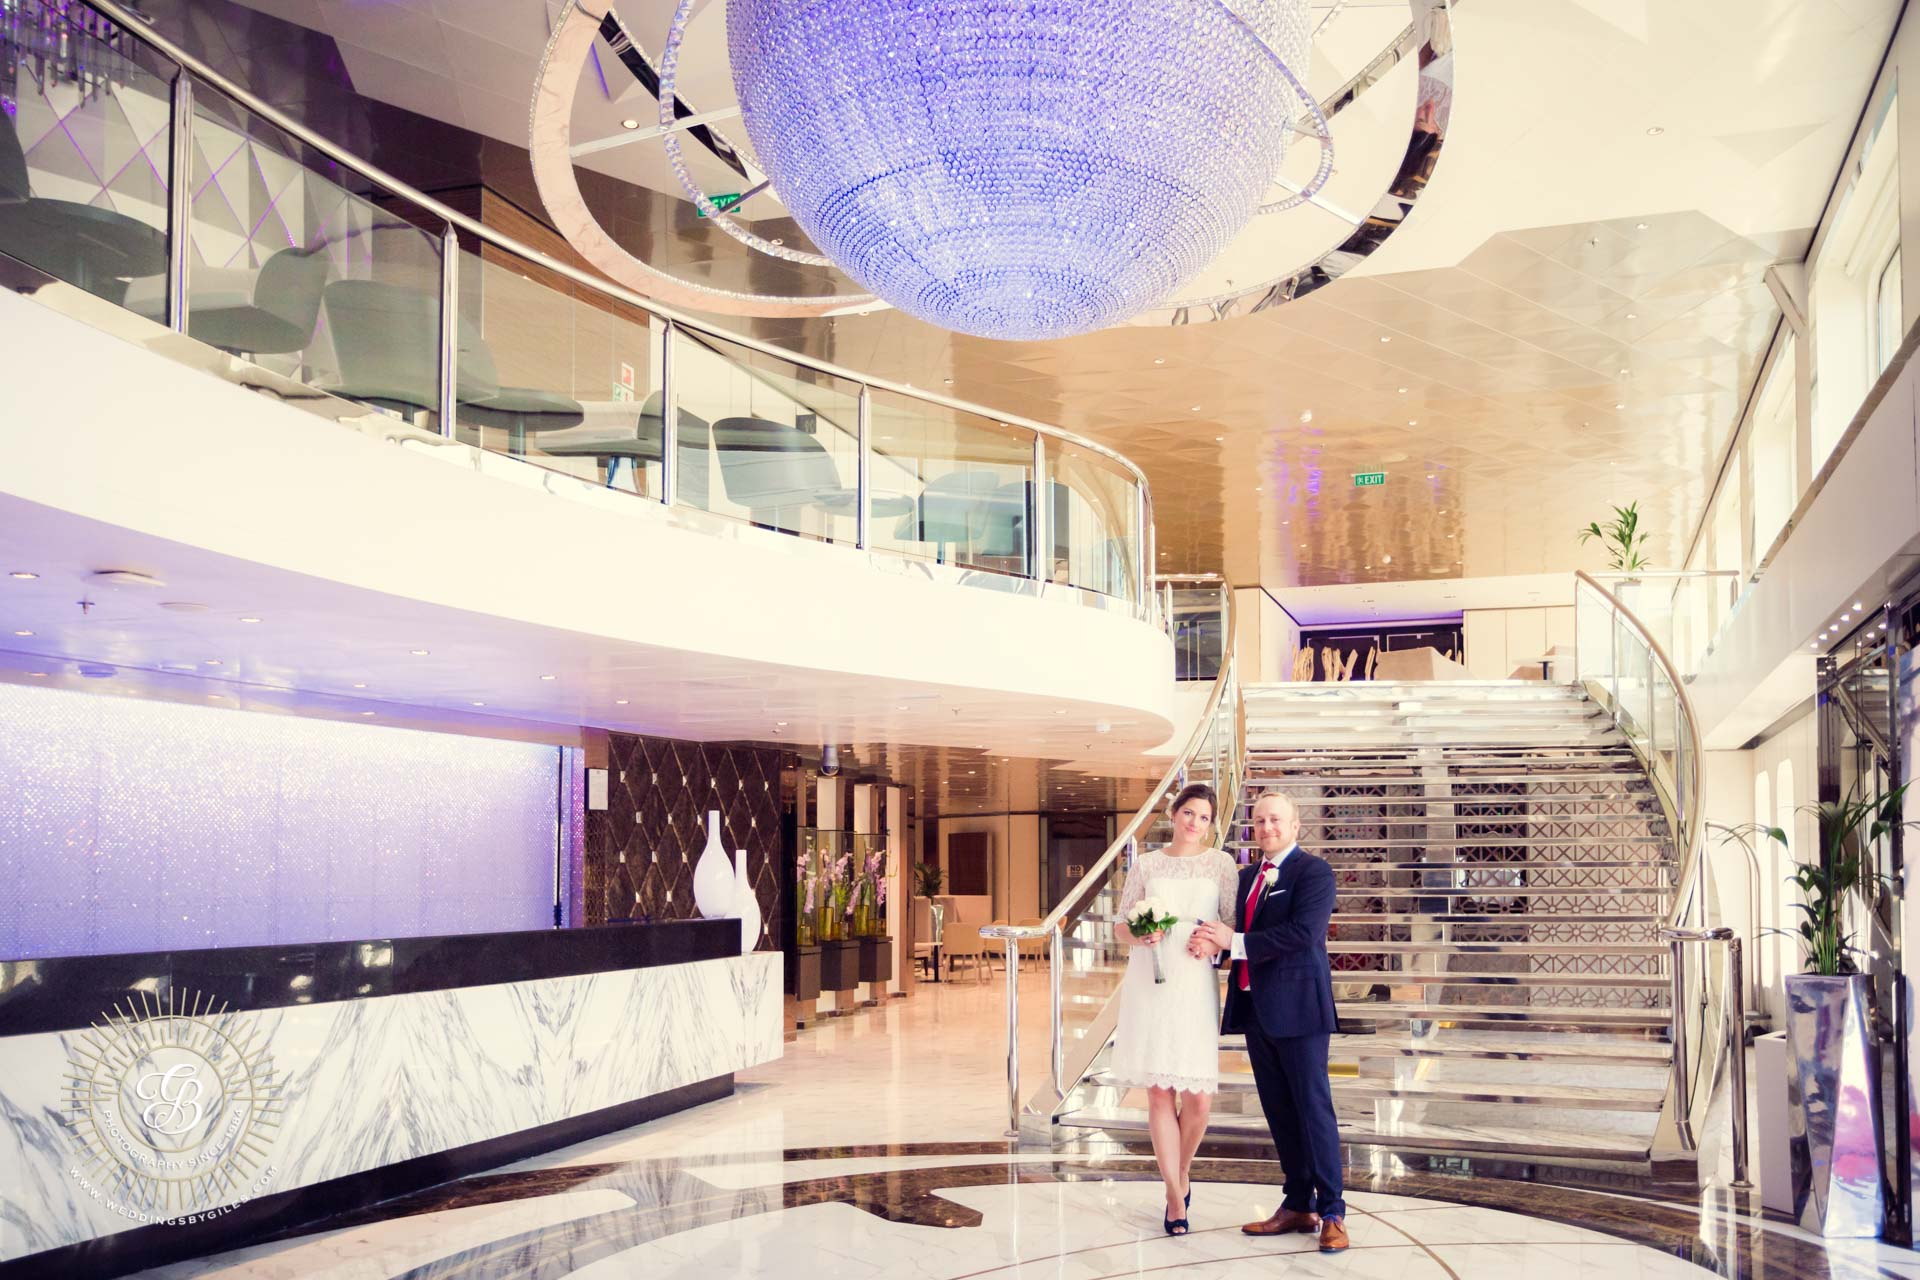 Wedding Photography at the Sunborn Hotel, Gibraltar